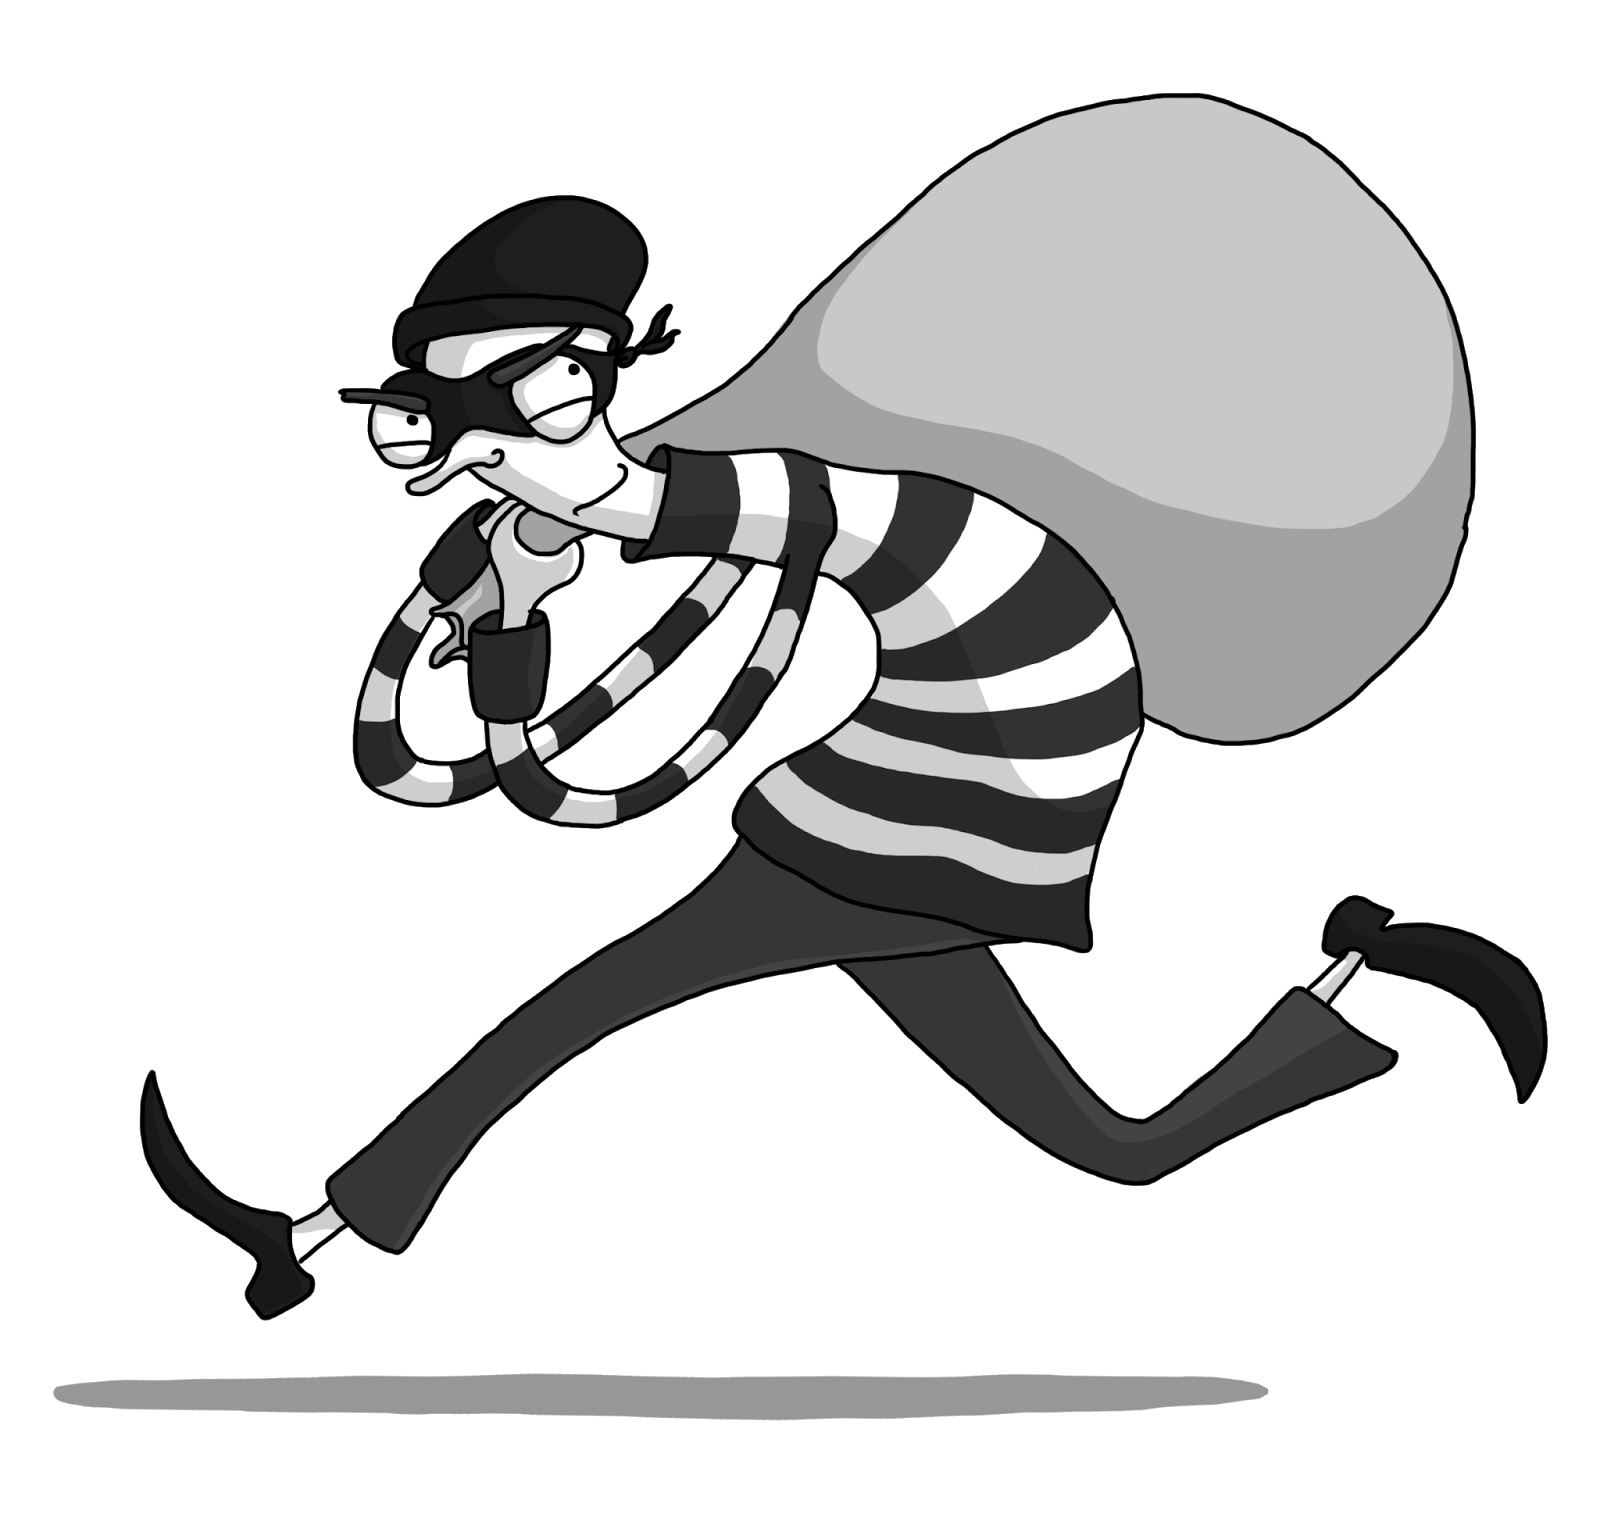 Free robber cliparts download. Criminal clipart delinquency